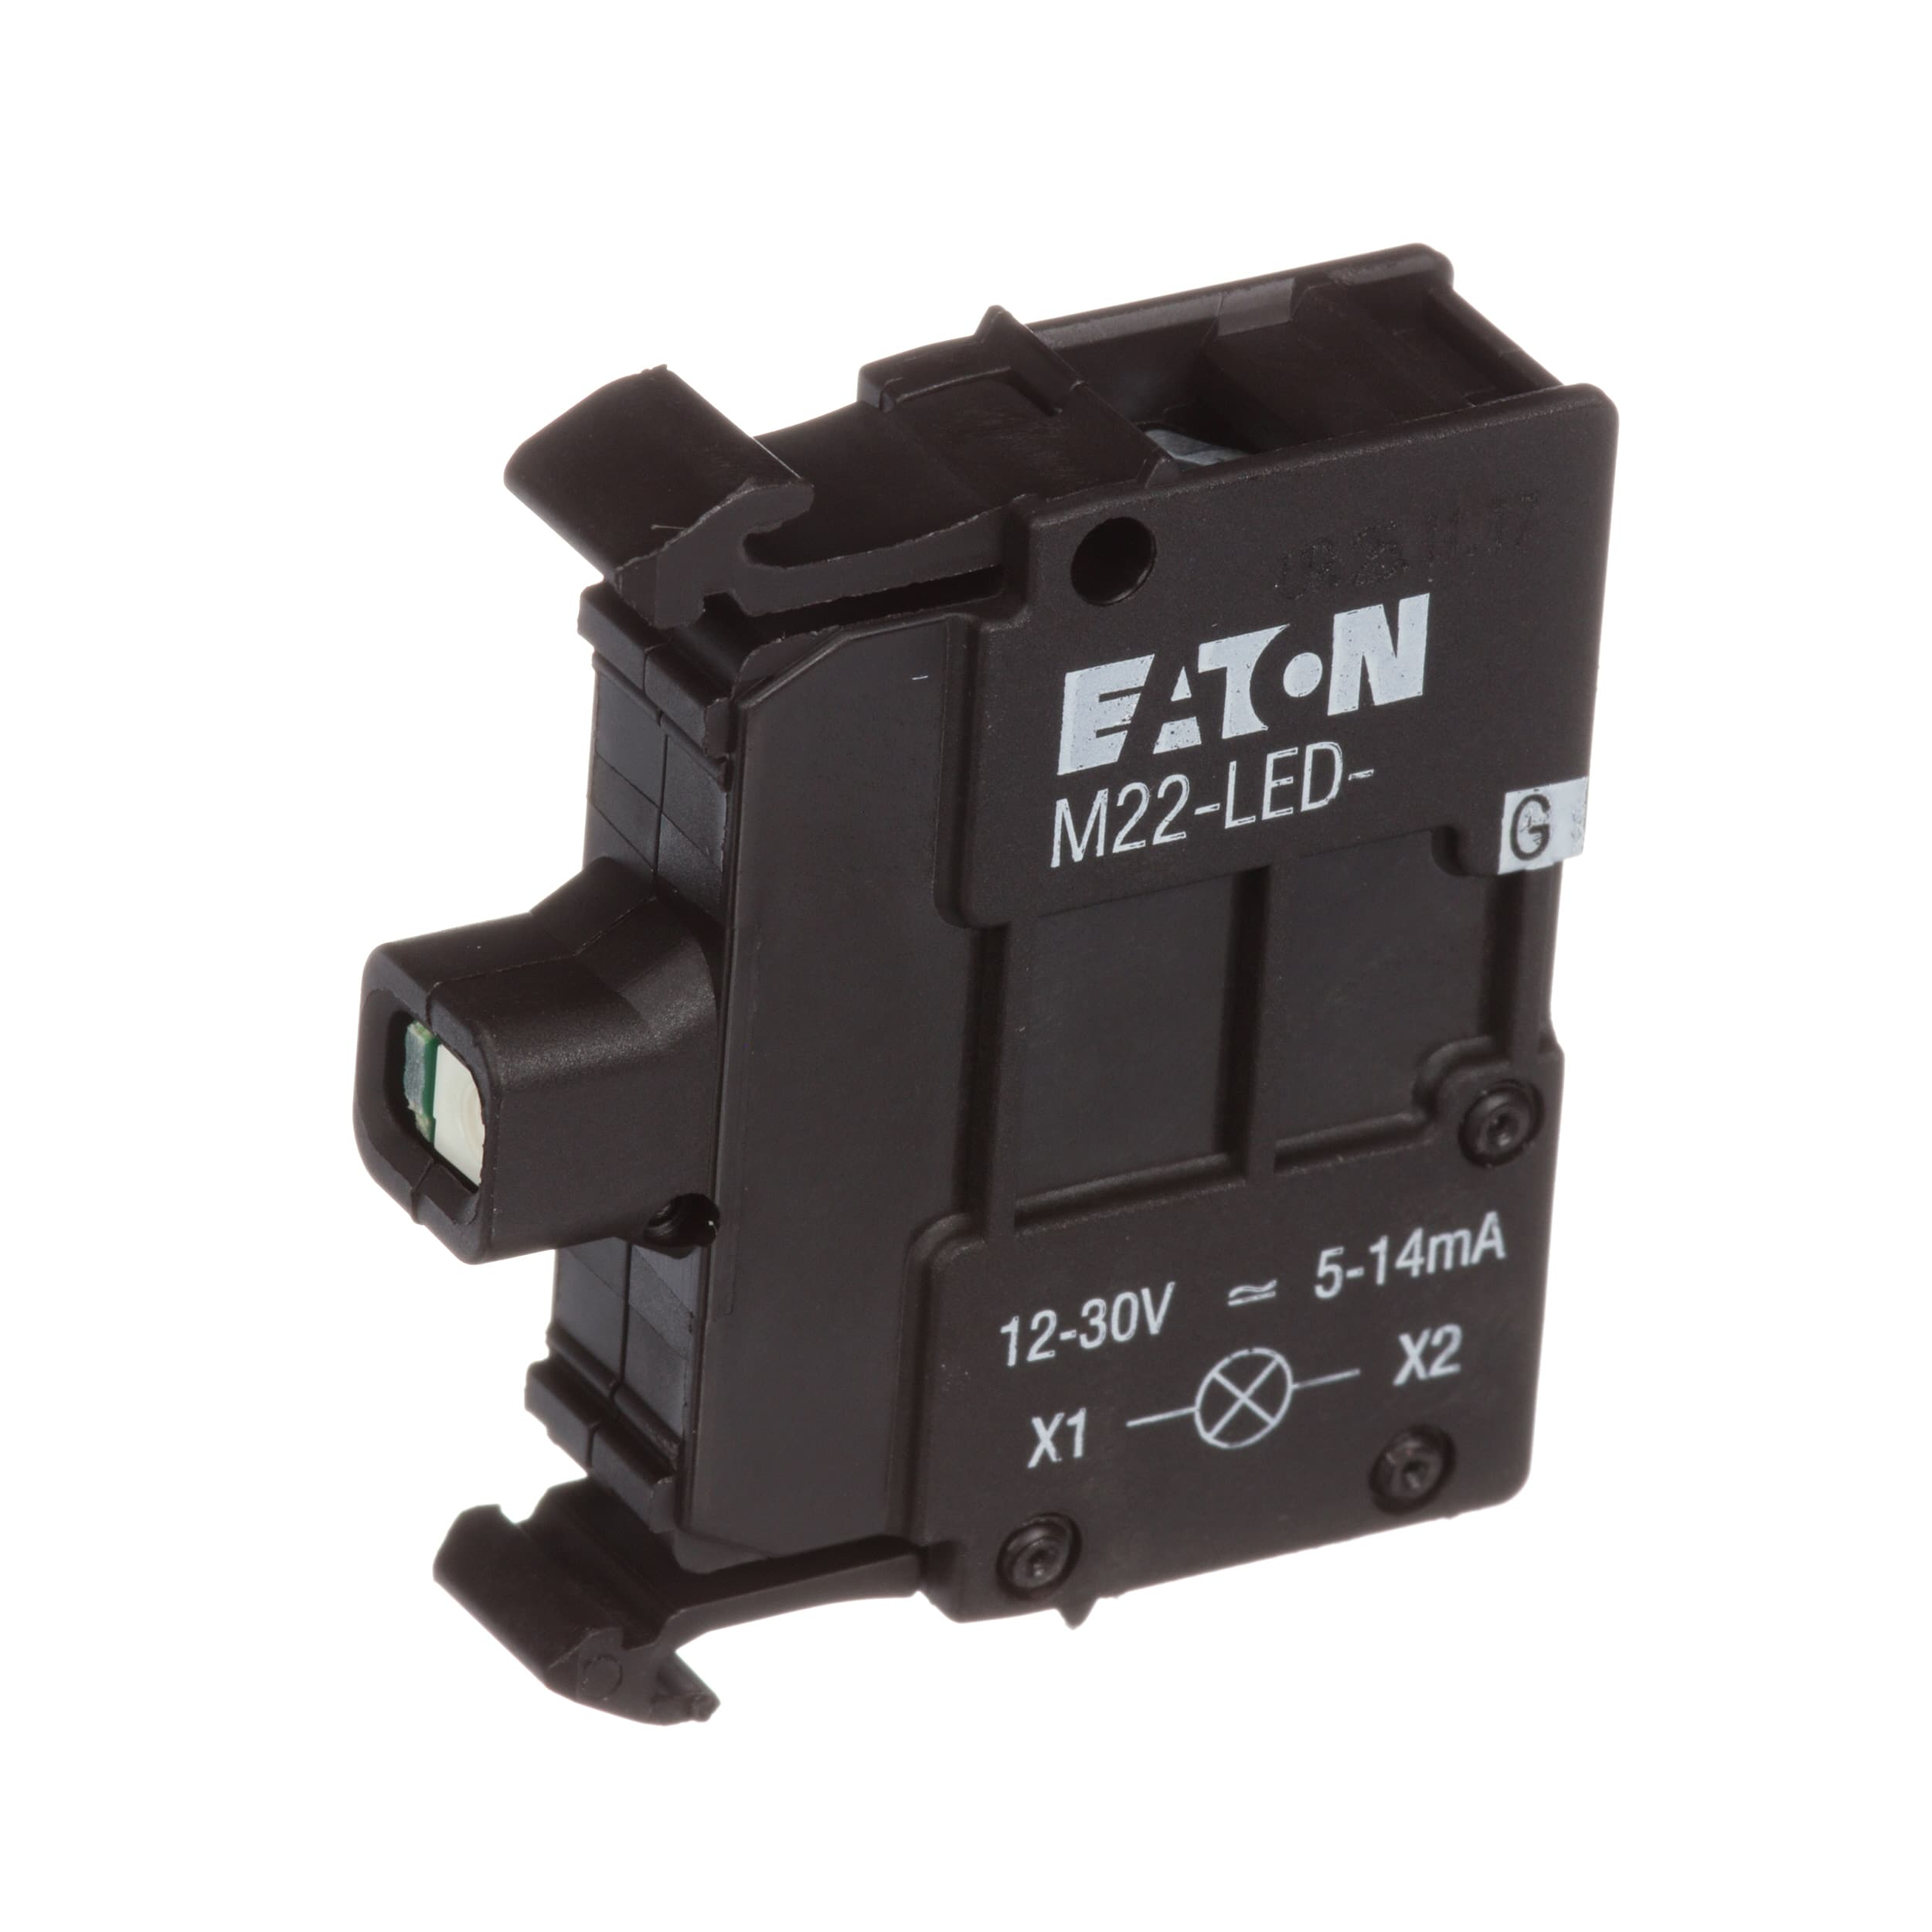 Eaton Cutler Hammer M22 Led G Light Block Green 12 Rocker Switch Spst X2 With Red Indicator Lamps 30vac Dc For Series Rmq Titan Allied Electronics Automation